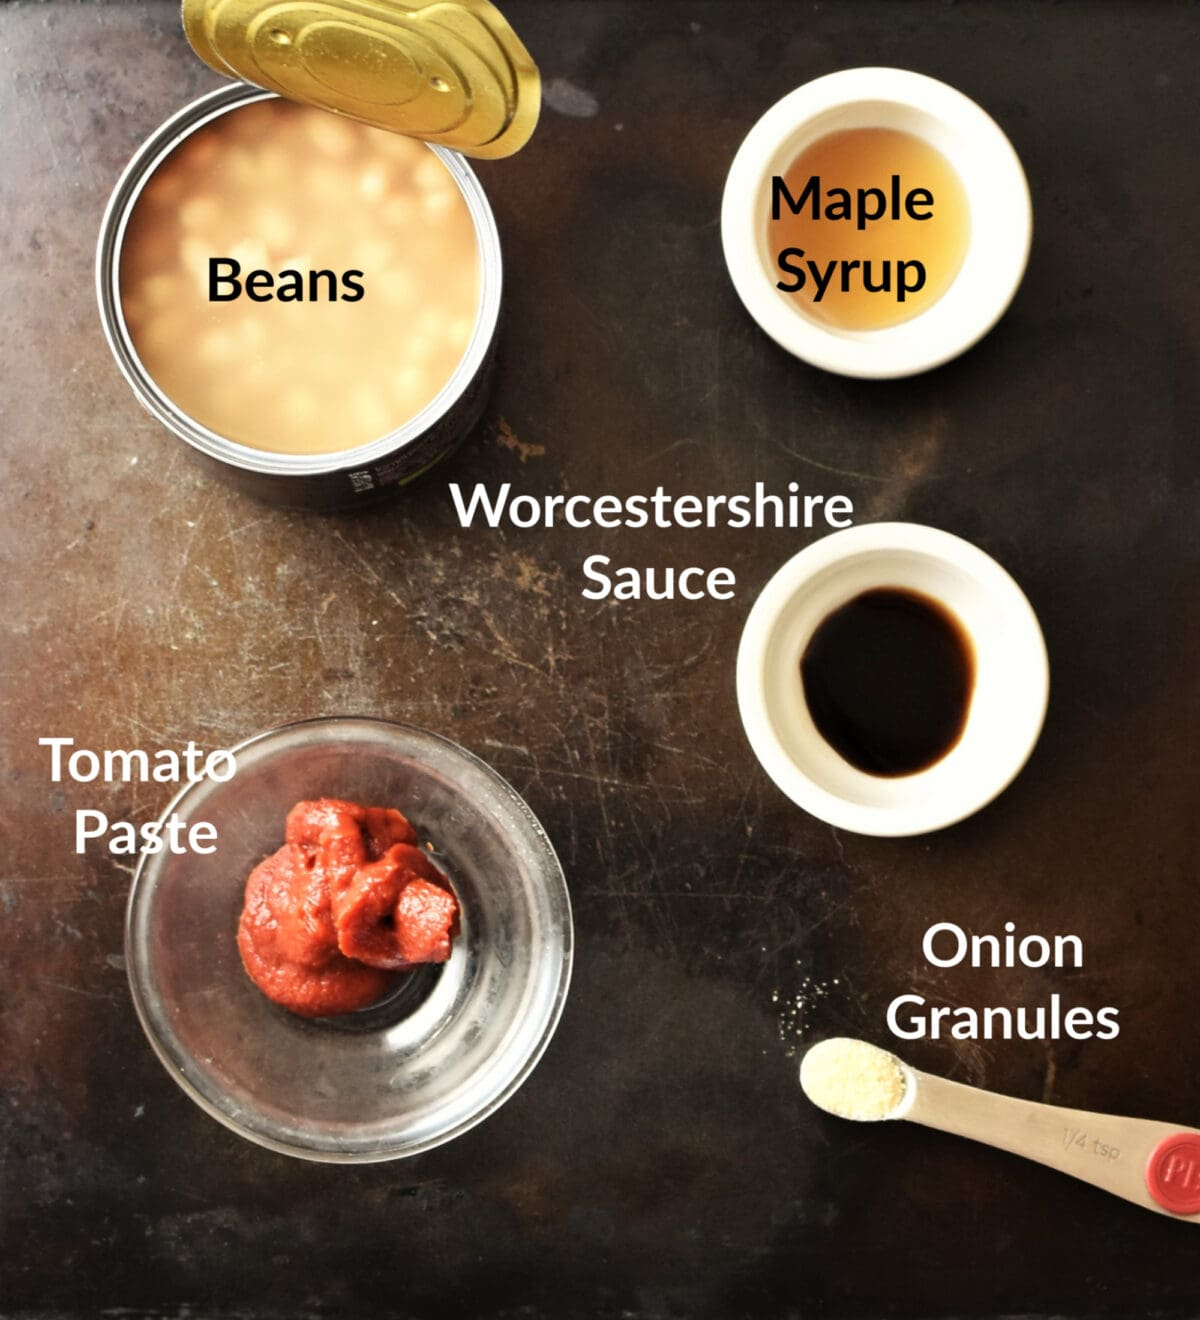 Baked beans ingredients in separate dishes.